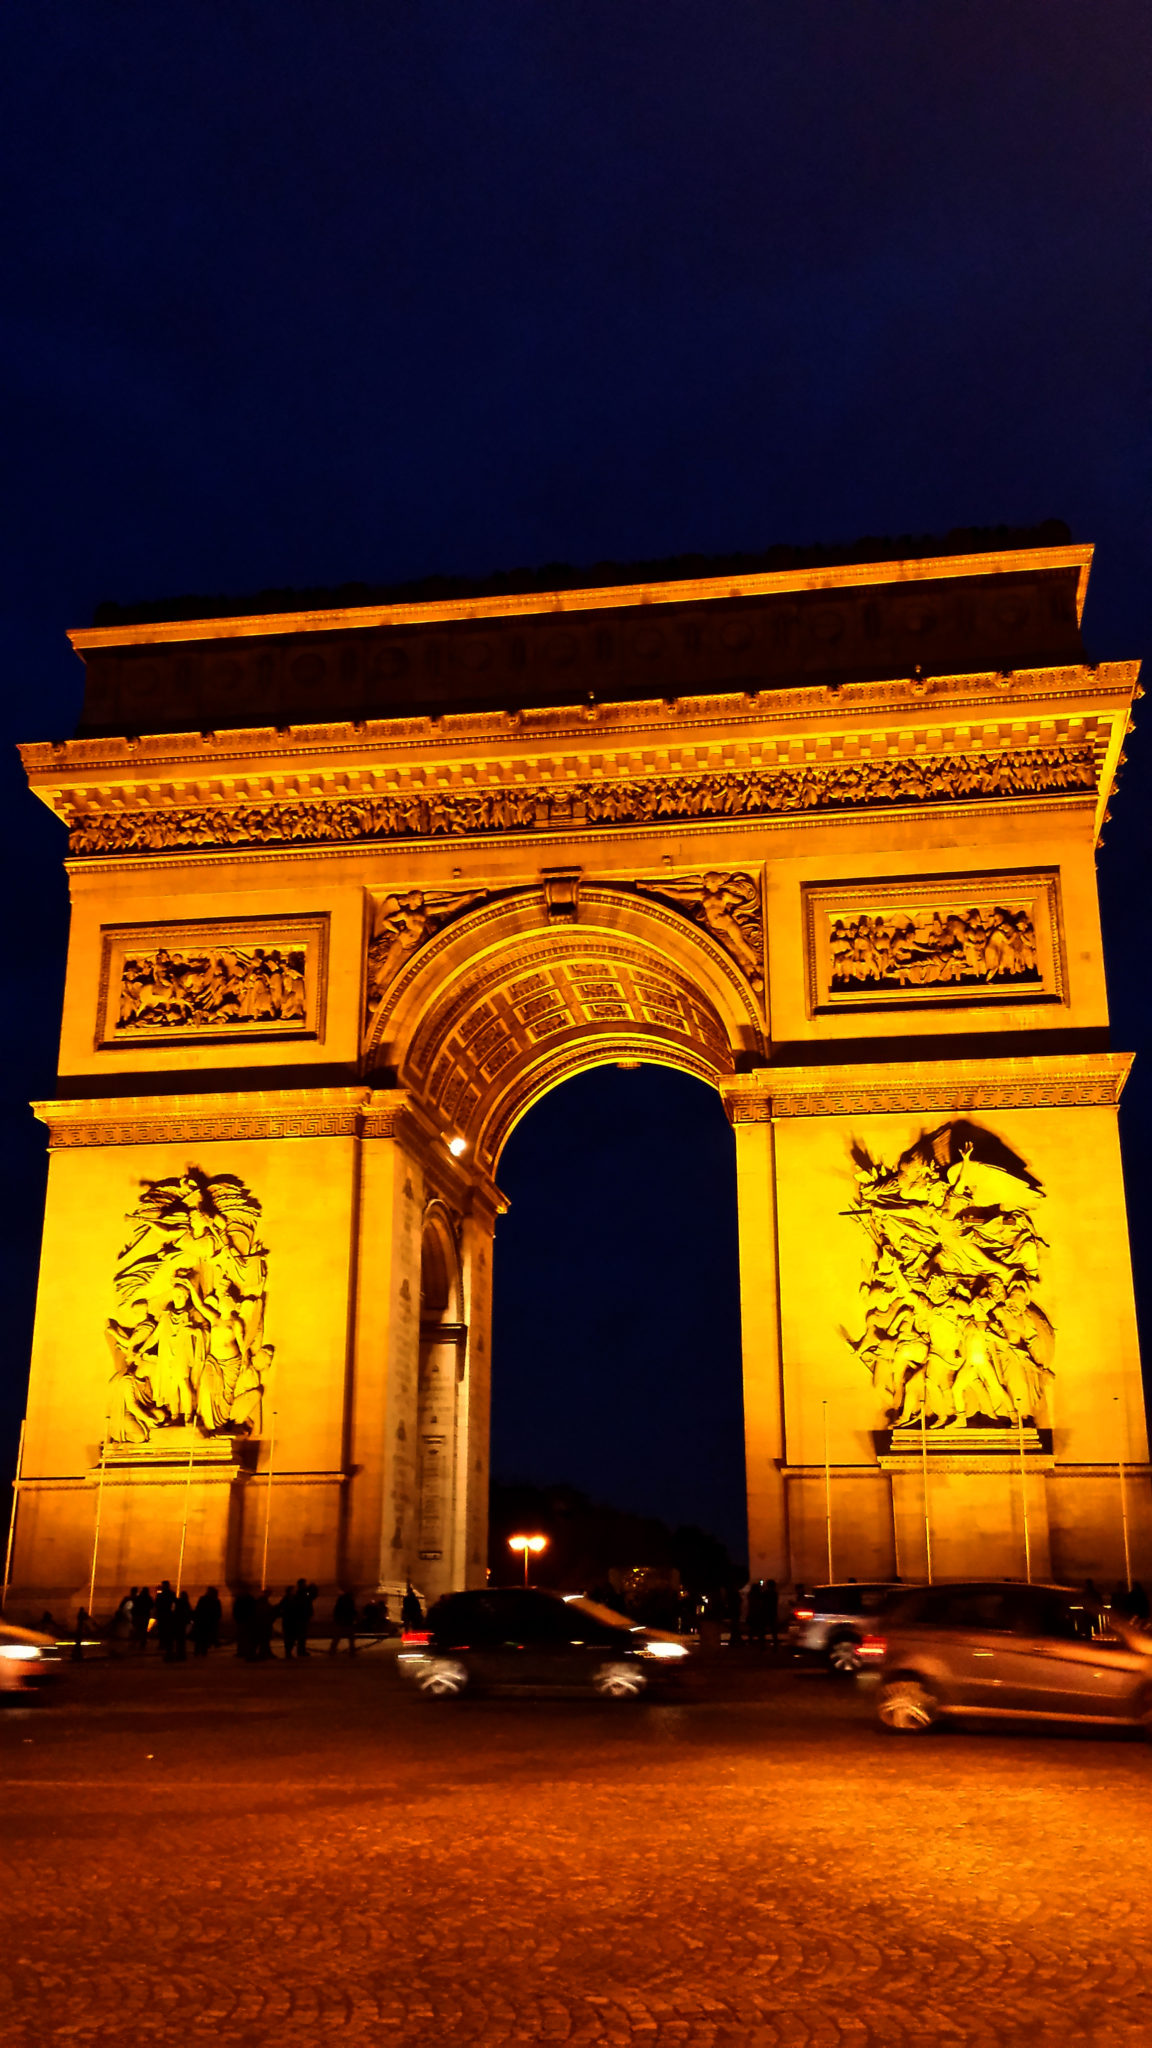 Hema_From_Paris_with_love_arc_de_triomphe